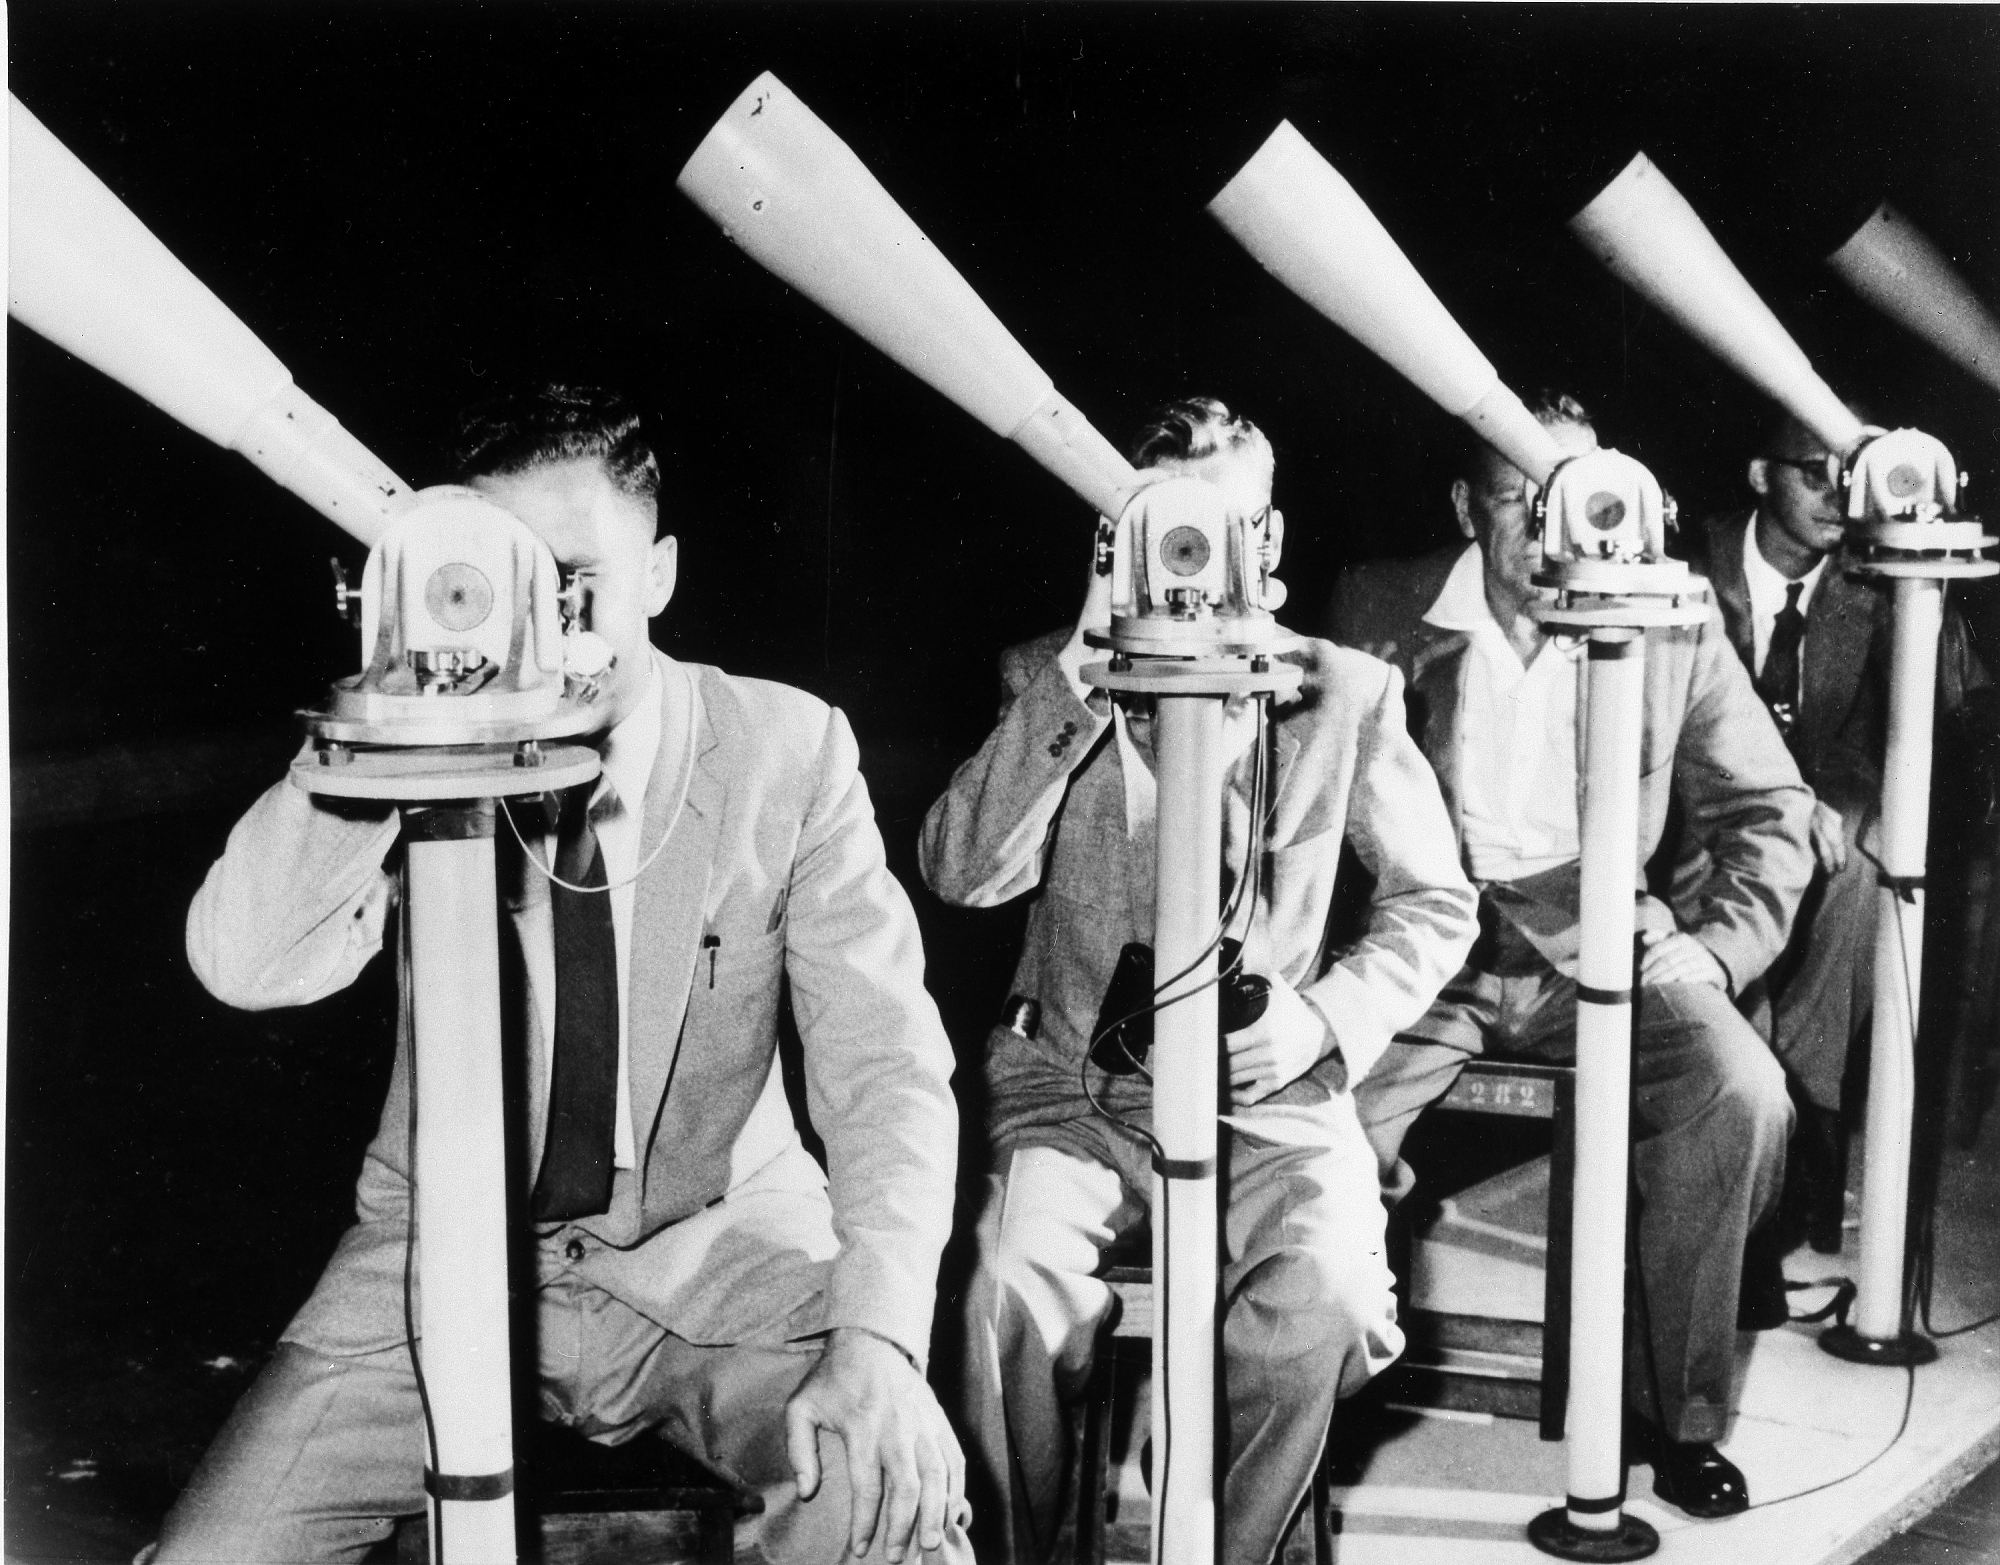 B&W photo of 4 men staggered peering through telescopes